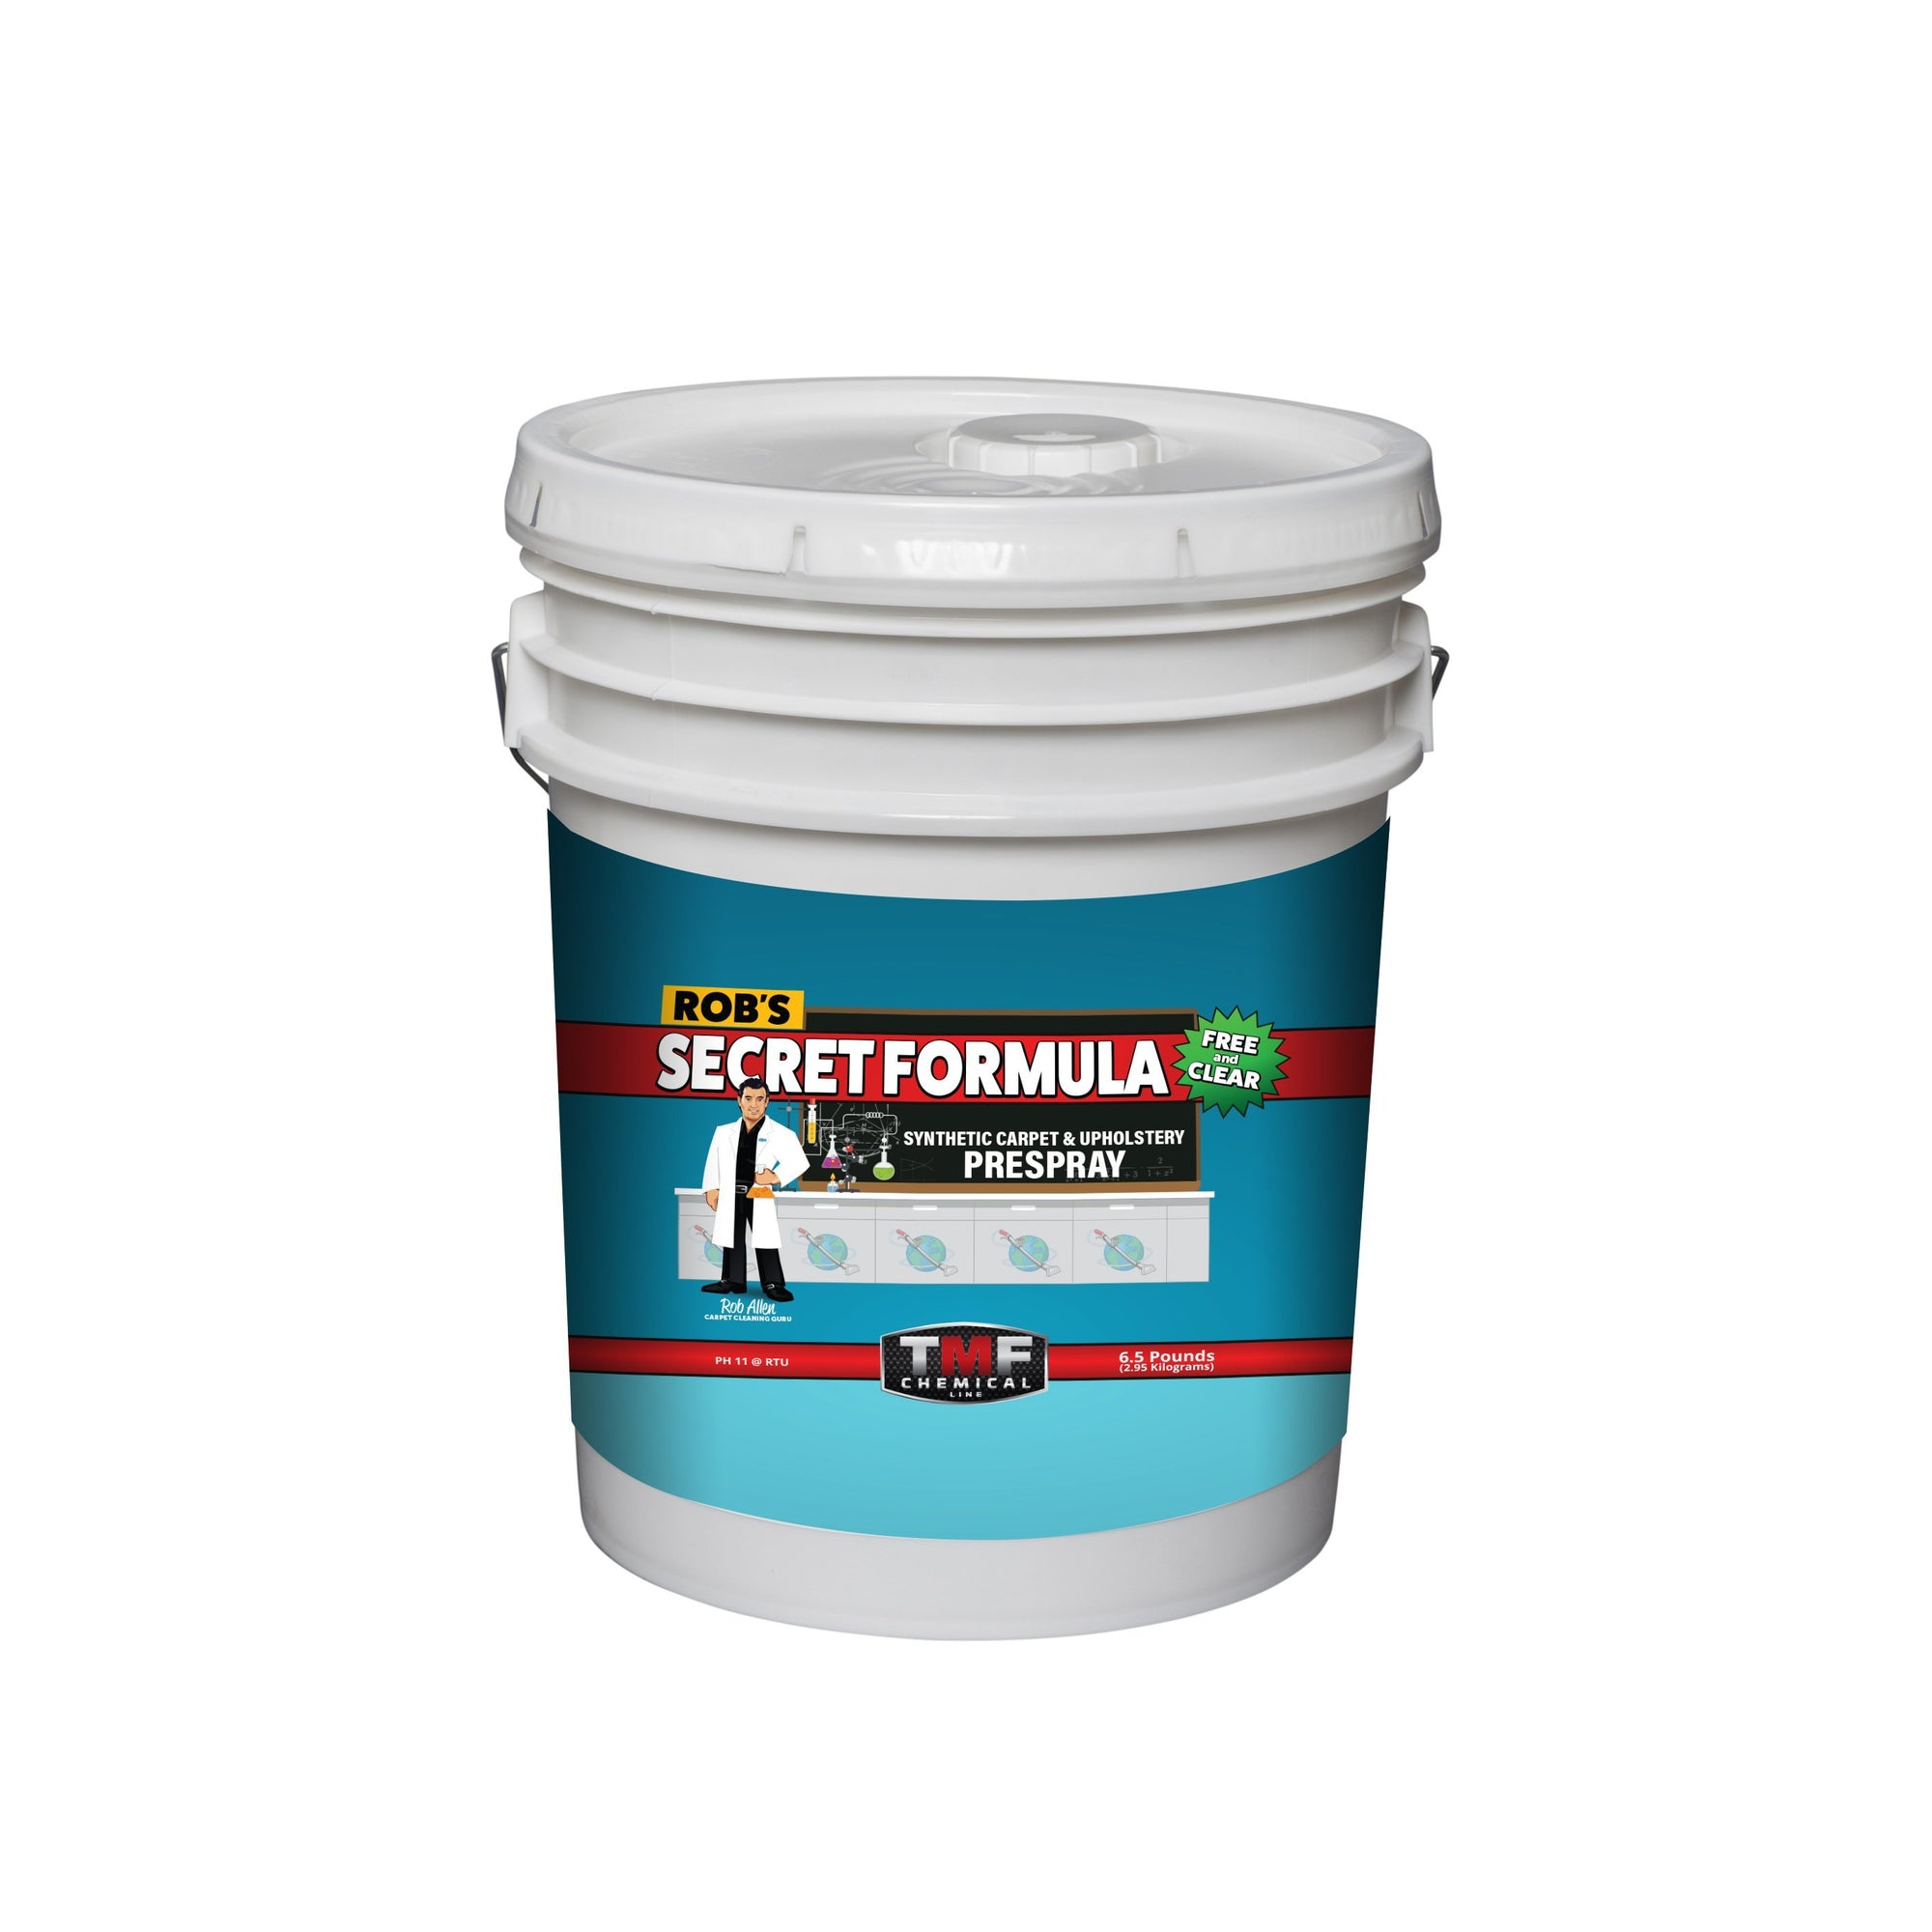 Rob's Secret Formula Free & Clear PAIL